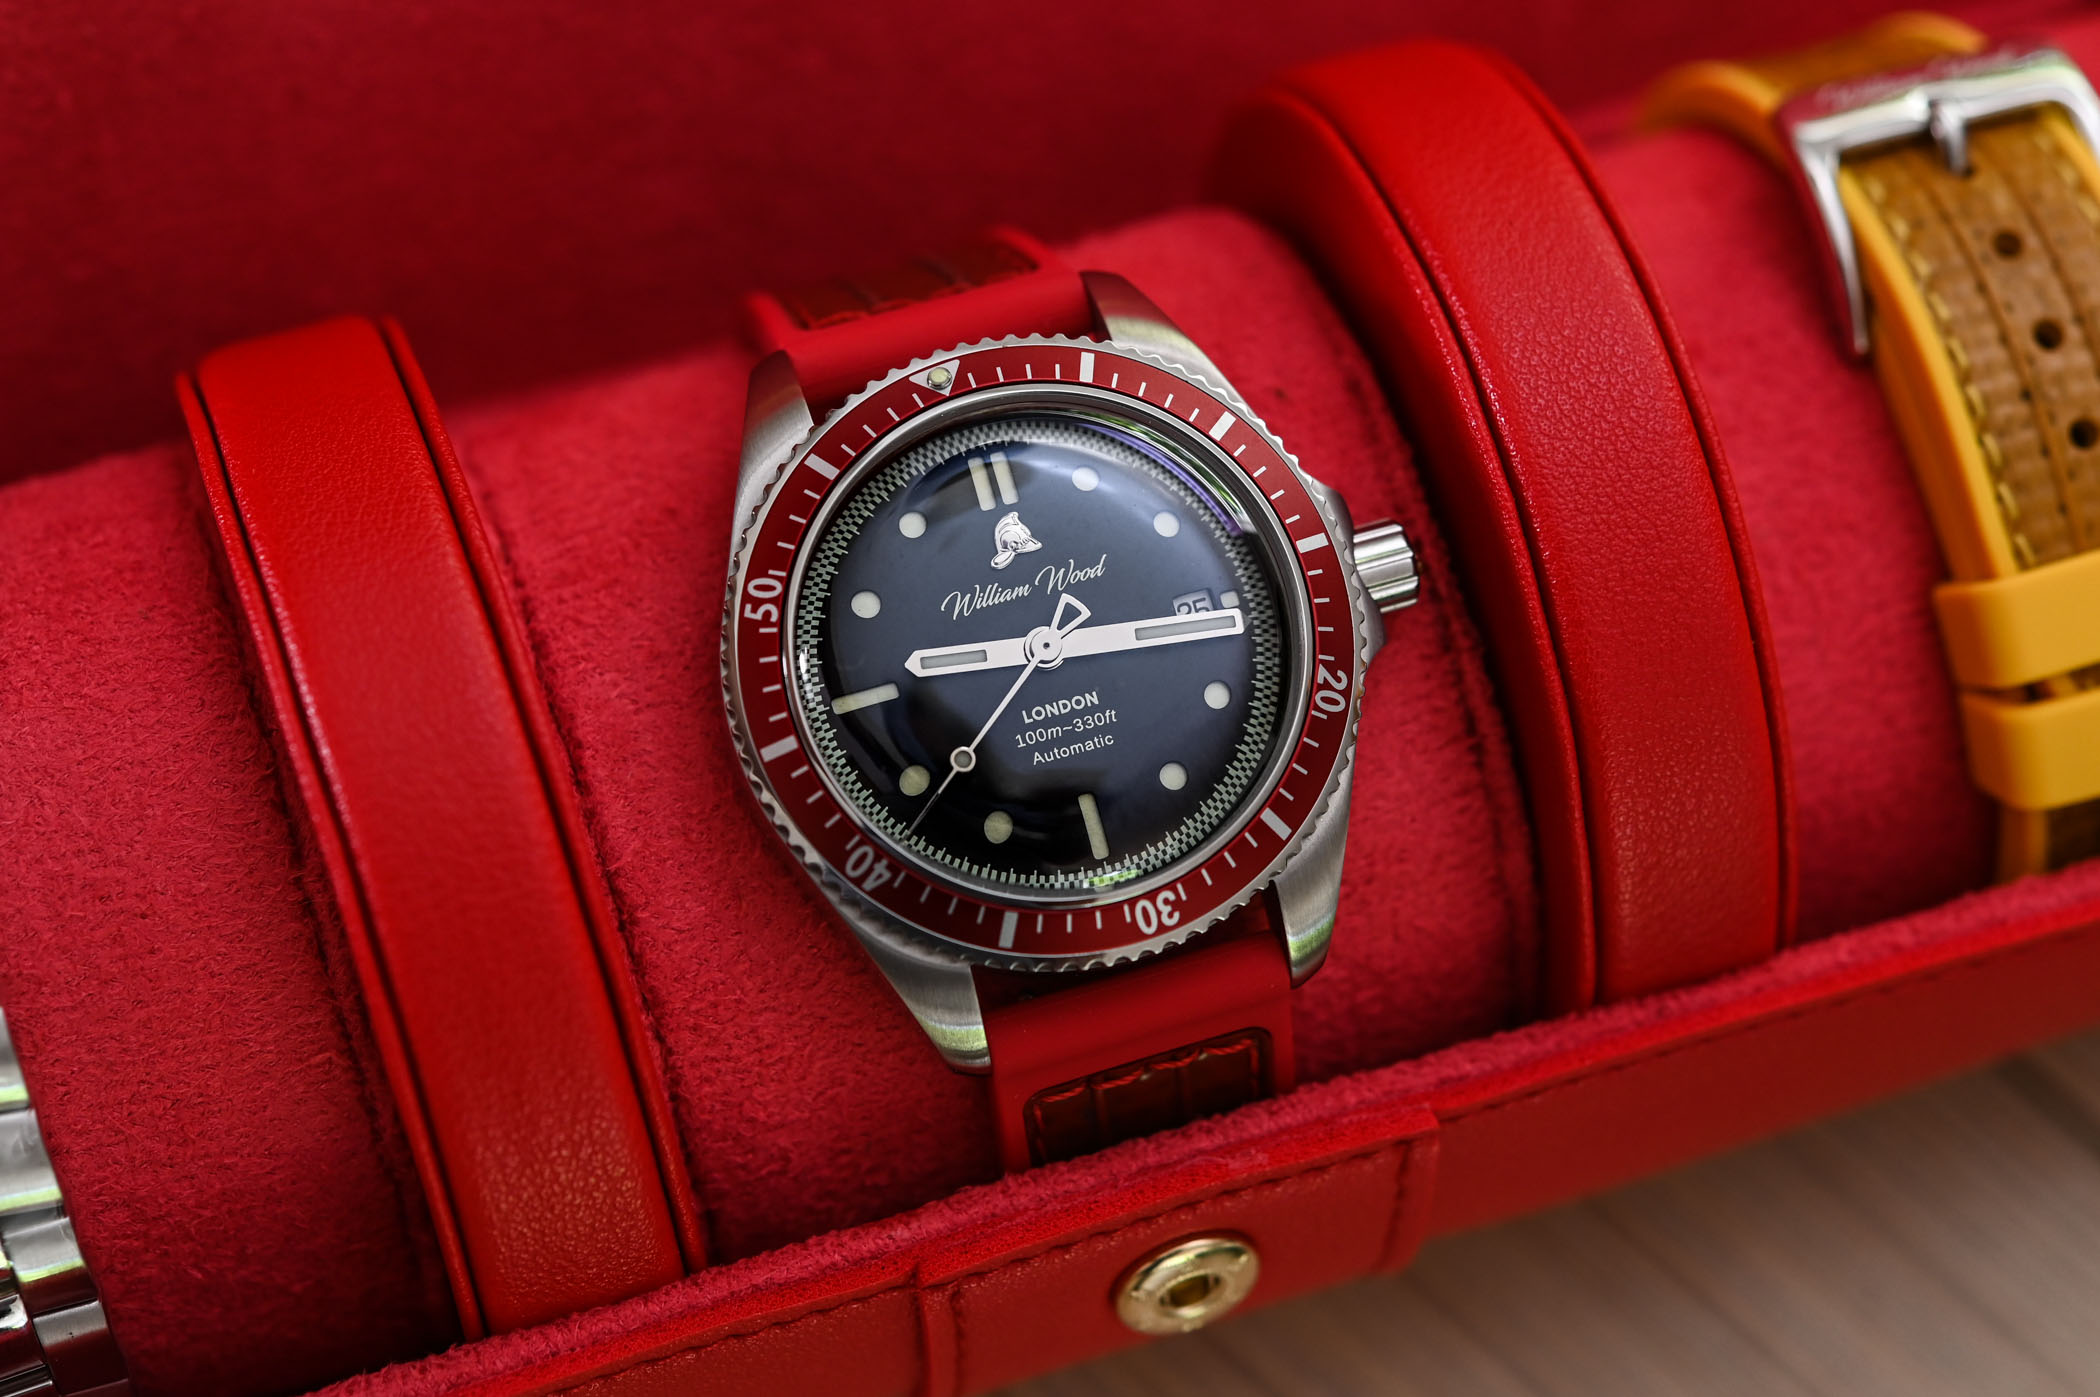 William Wood Valiant Red Watch